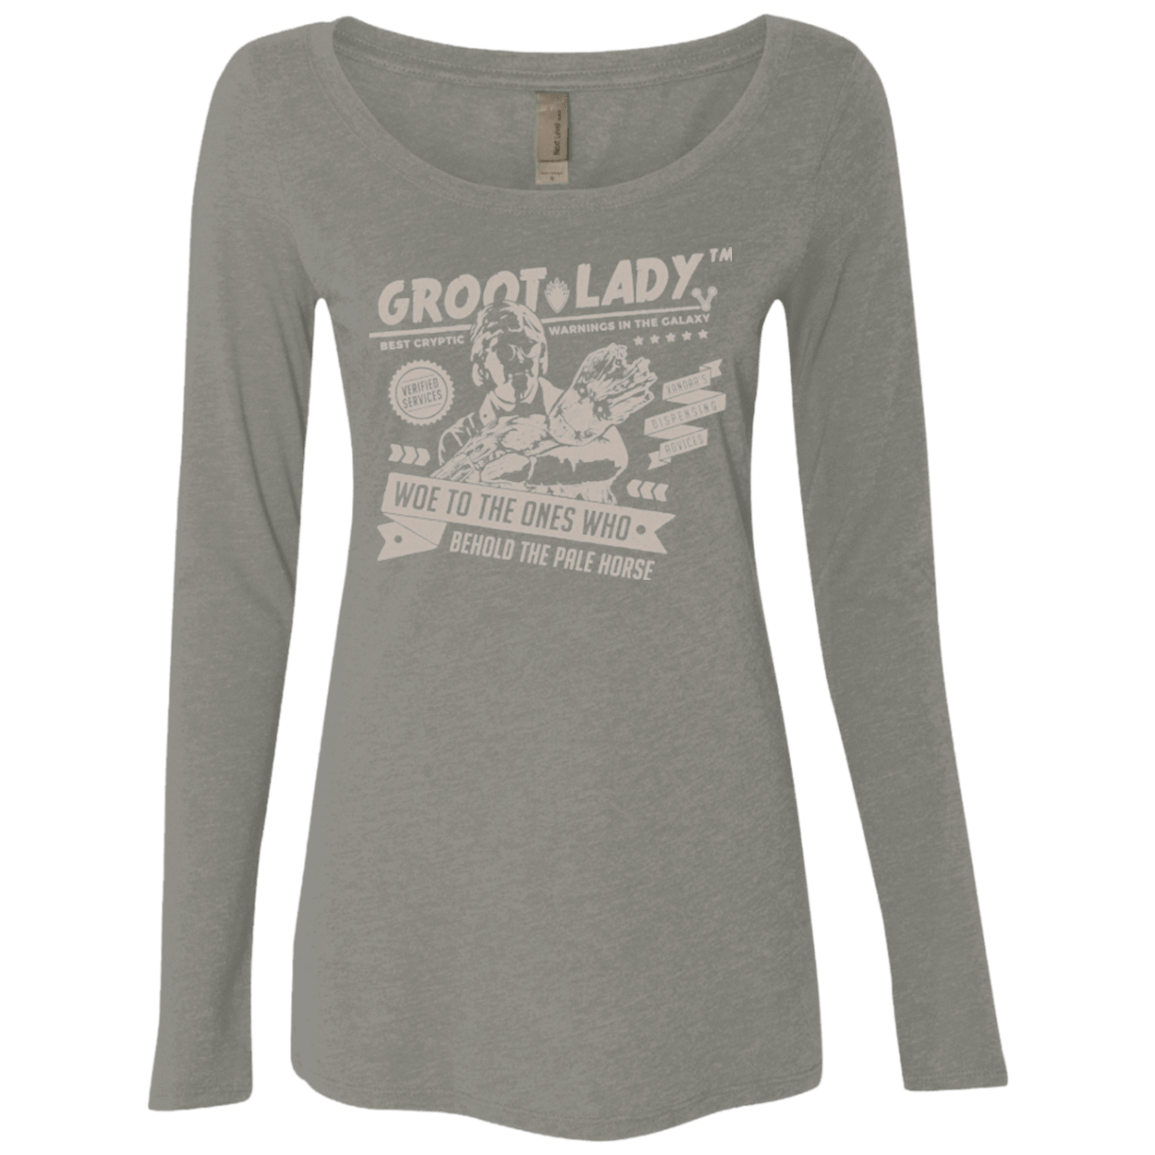 T-Shirts Venetian Grey / Small Groot Lady Women's Triblend Long Sleeve Shirt